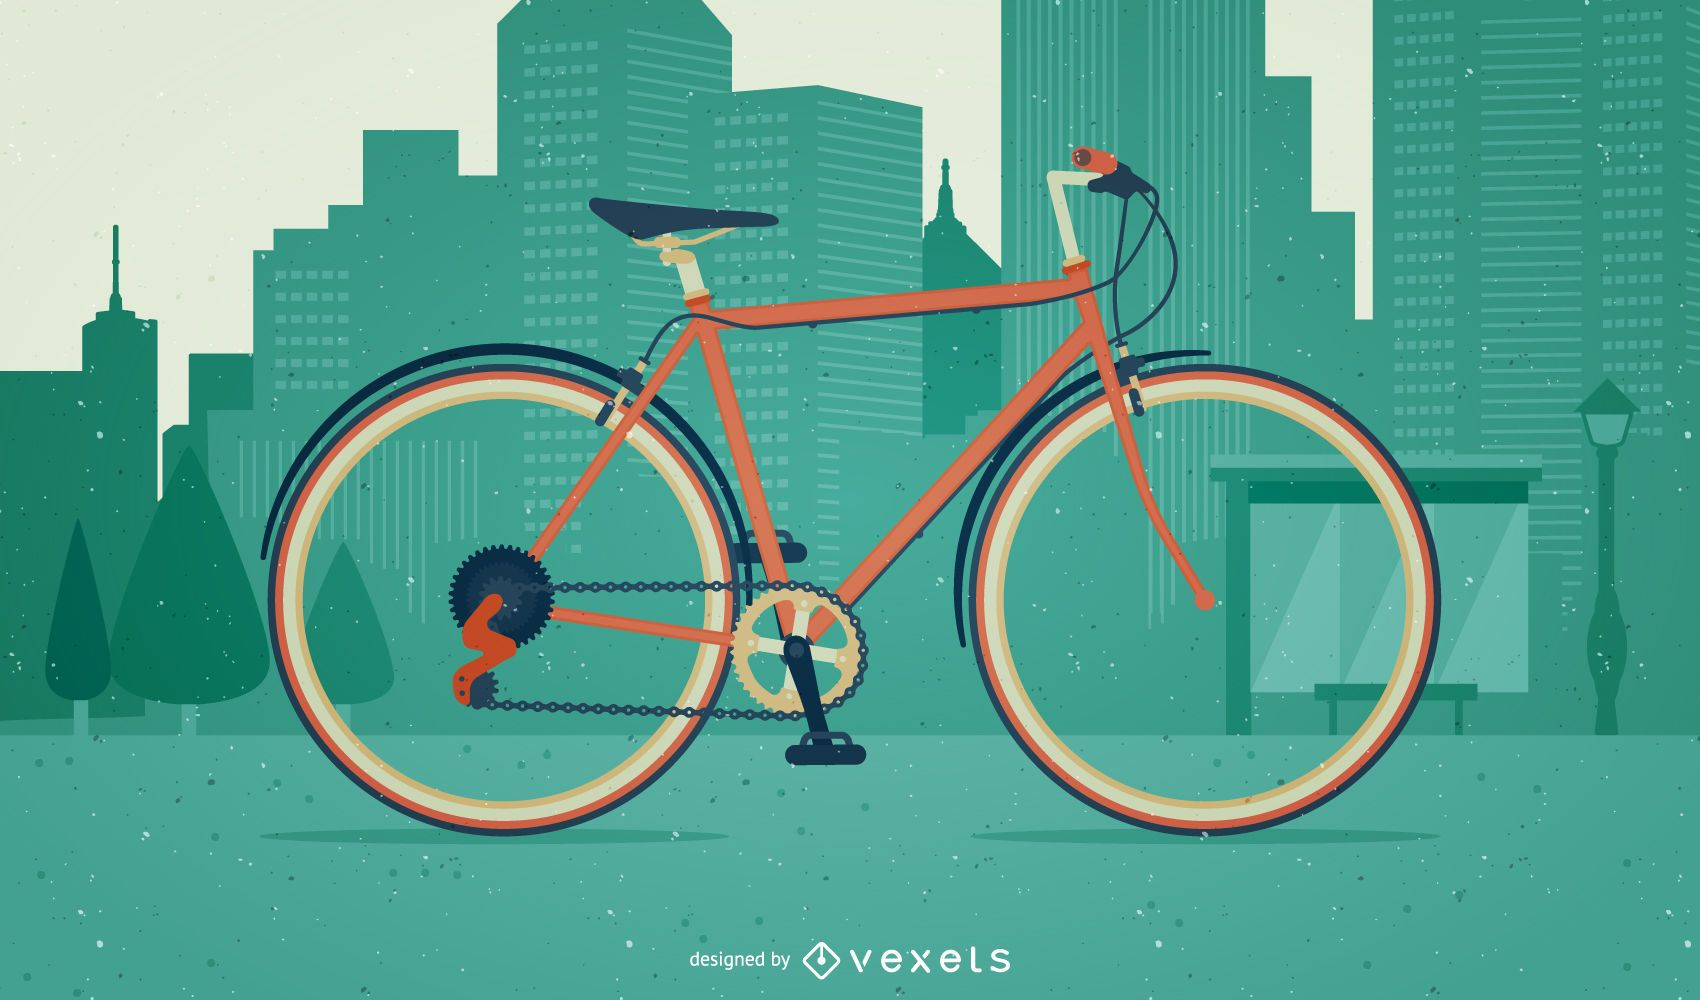 Bicycle illustration on a city